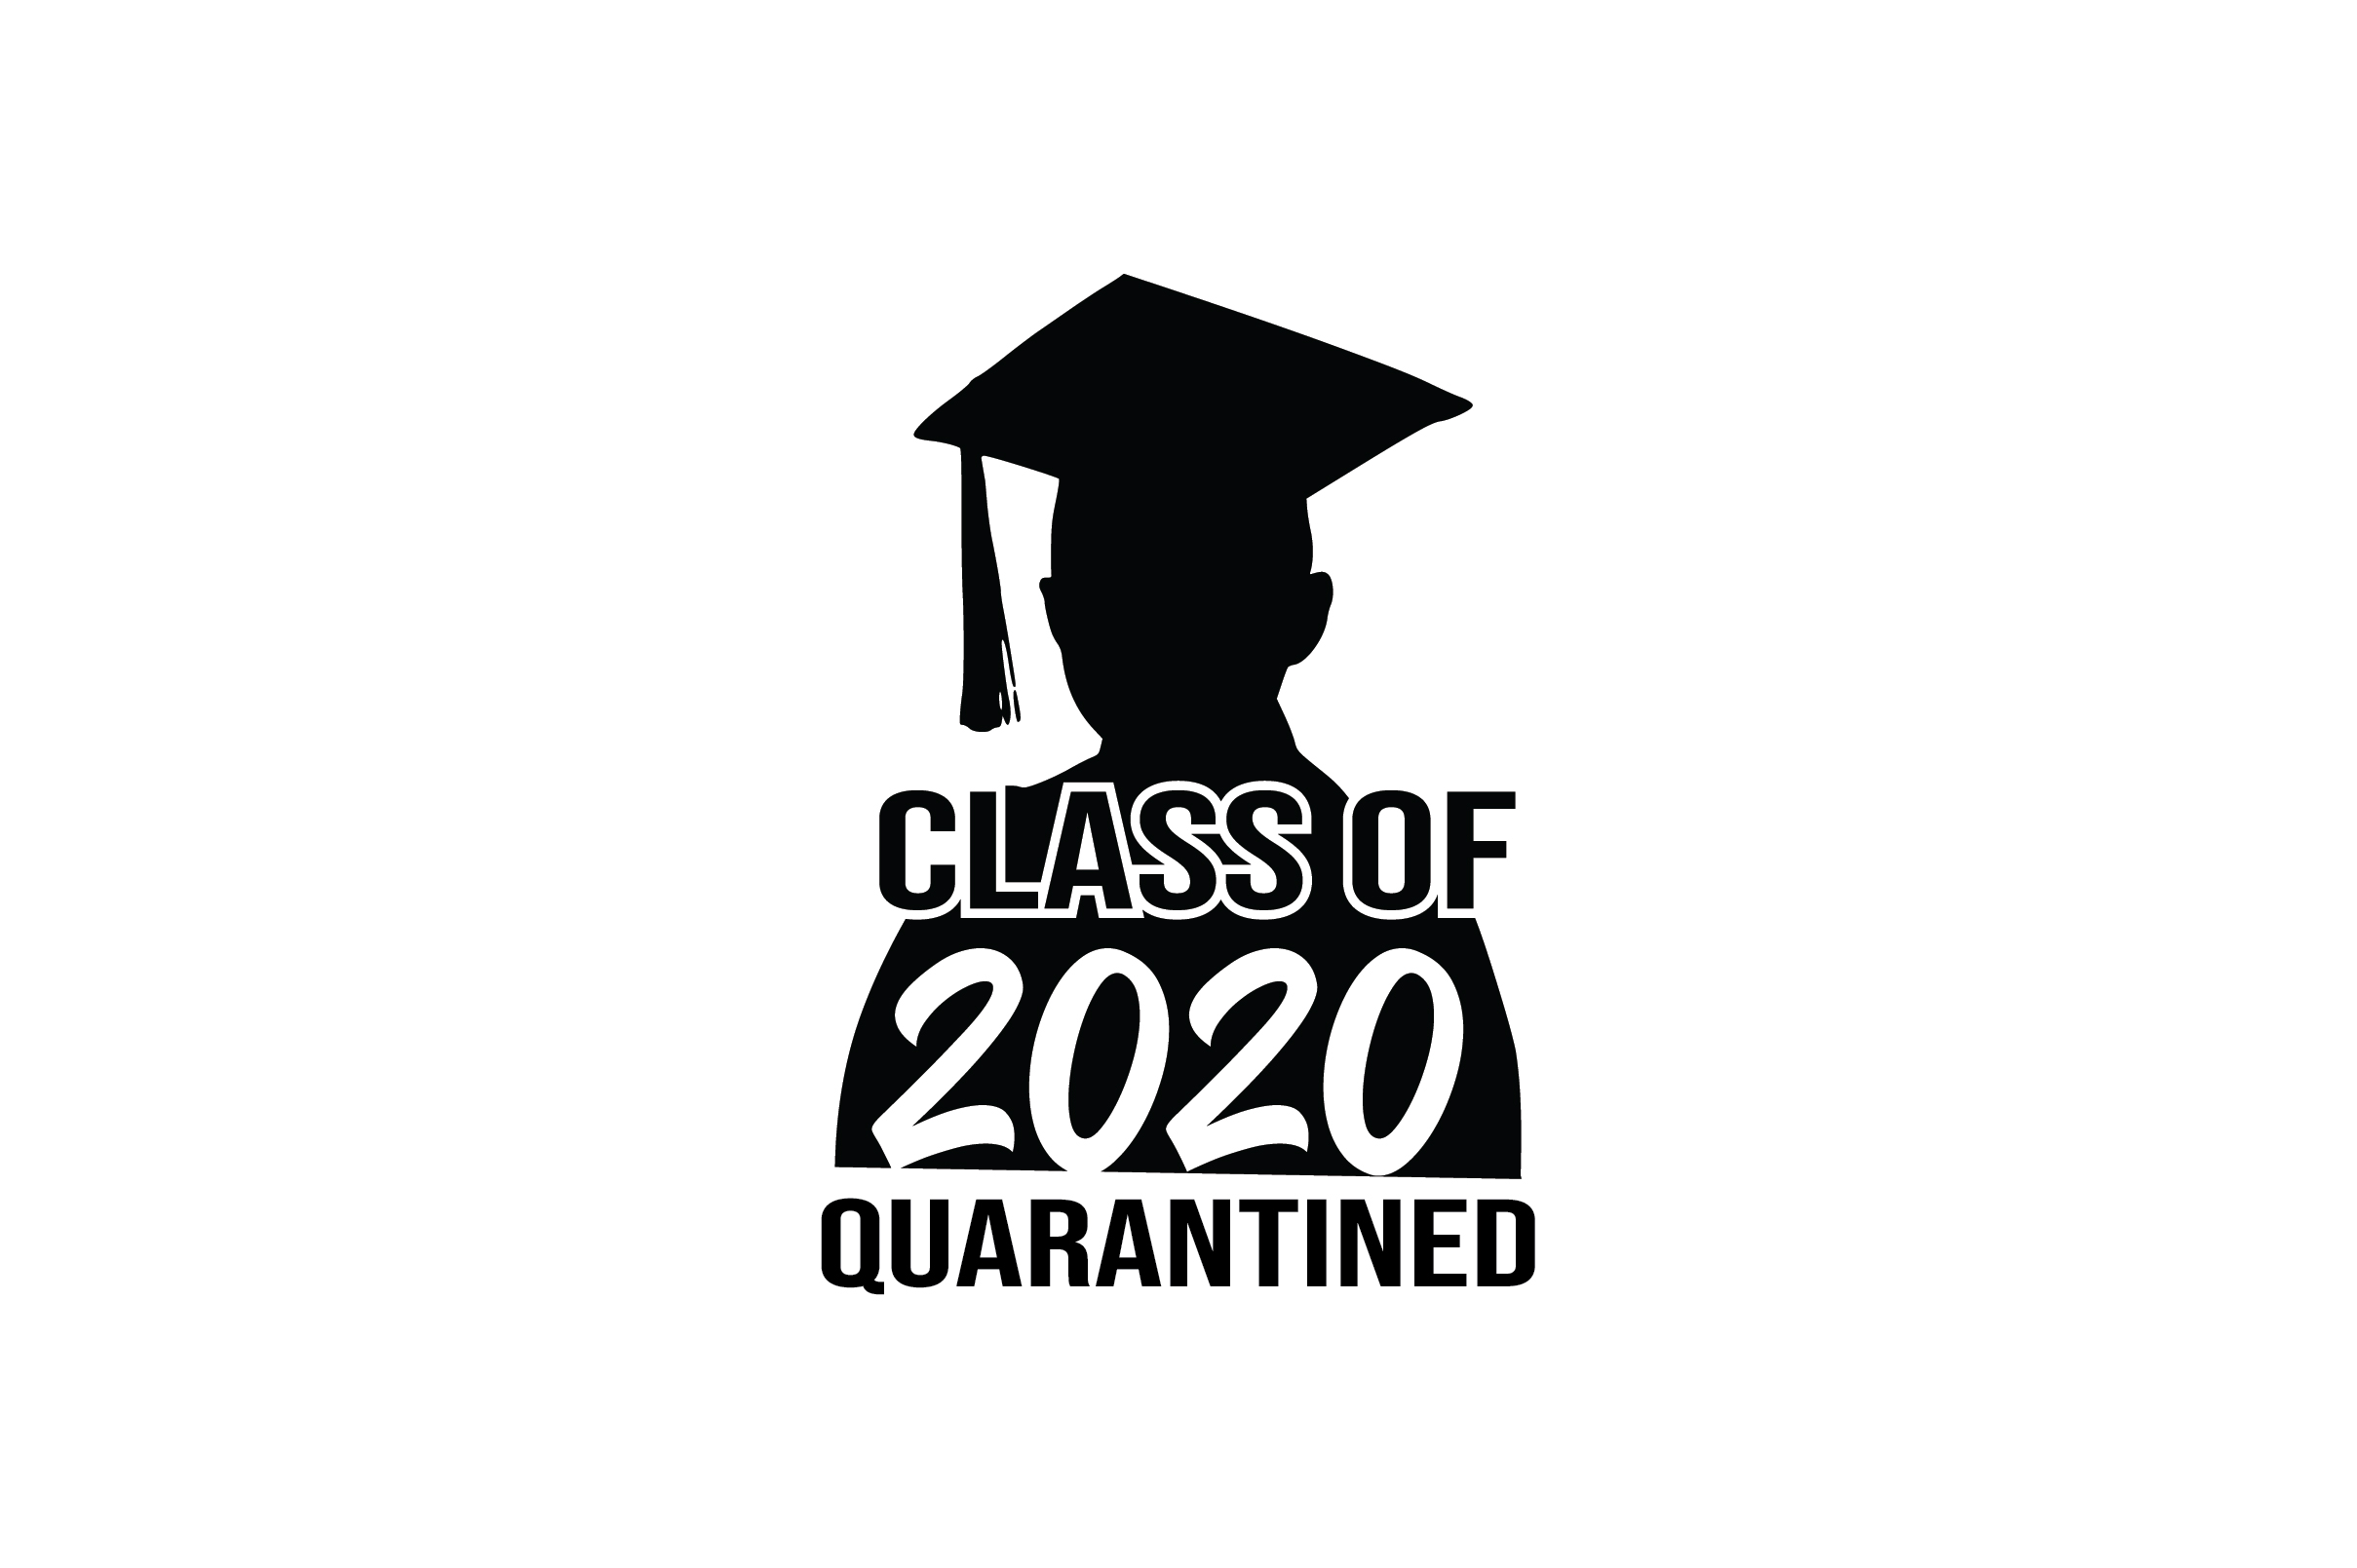 Download Free Class Of 2020 Quarantined Graphic By Fauzidea Creative Fabrica for Cricut Explore, Silhouette and other cutting machines.